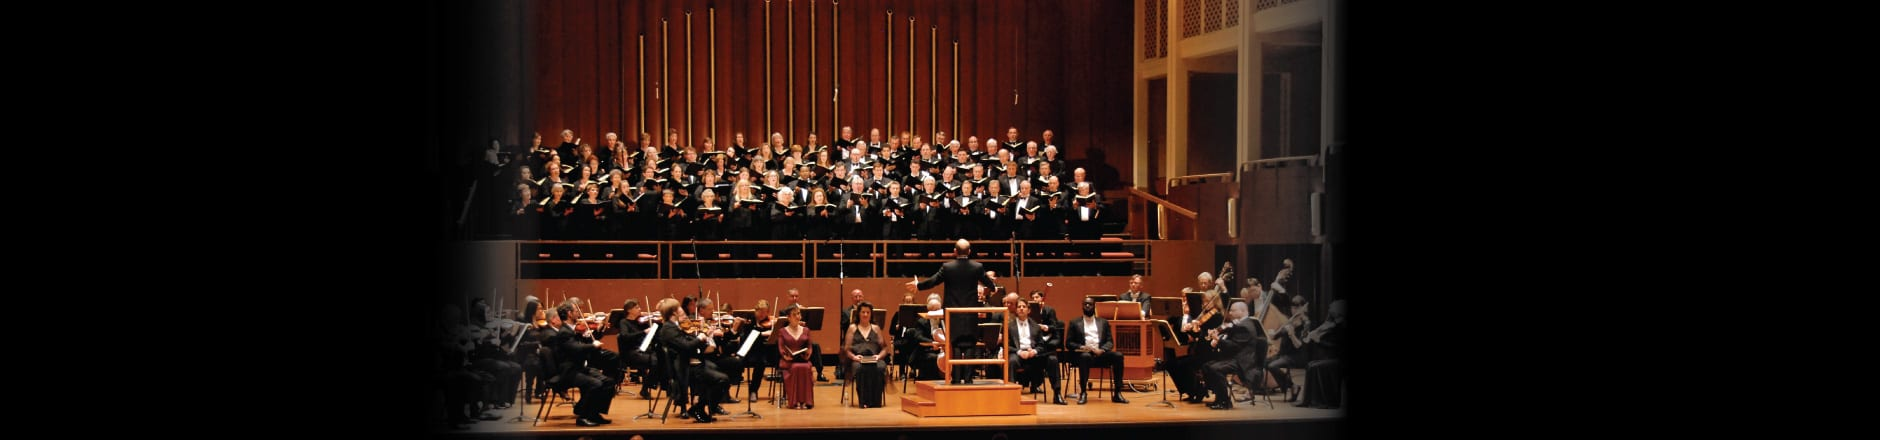 Indianapolis Symphony Orchestra - COVID-19 CANCELLATION